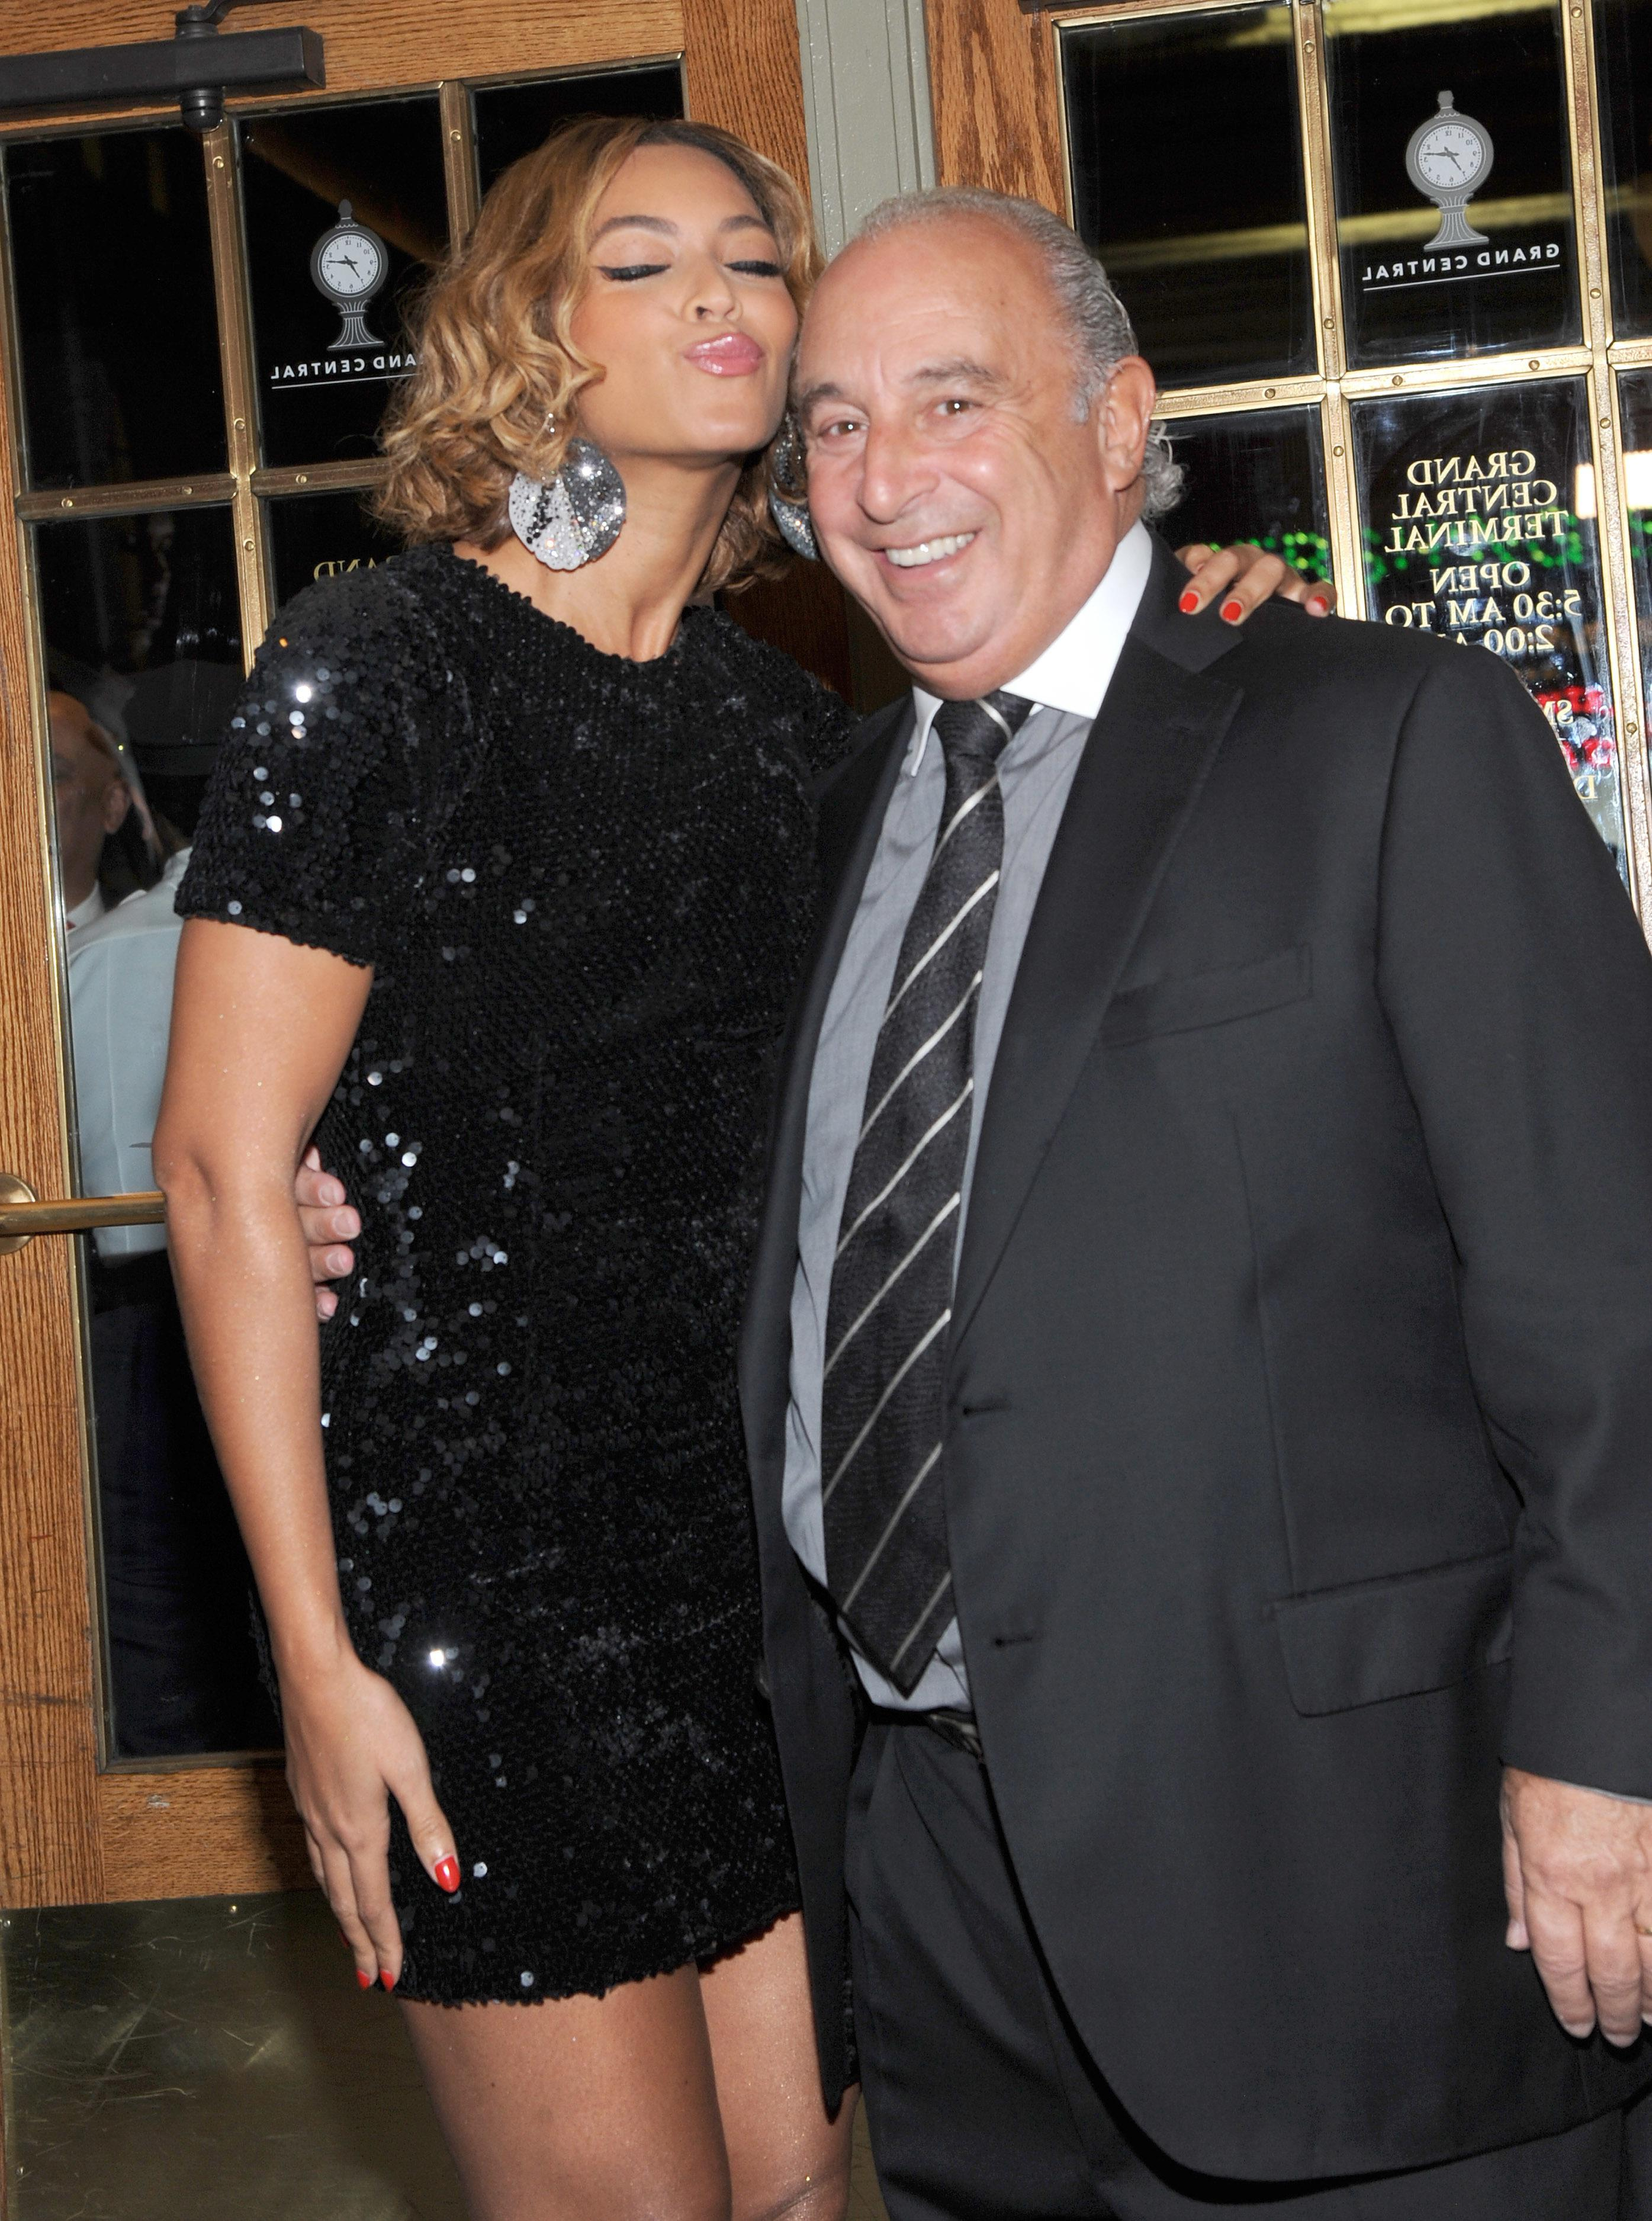 Topshop Founder Sir Philip Green named in Sexual Harassment and Bullying Allegations